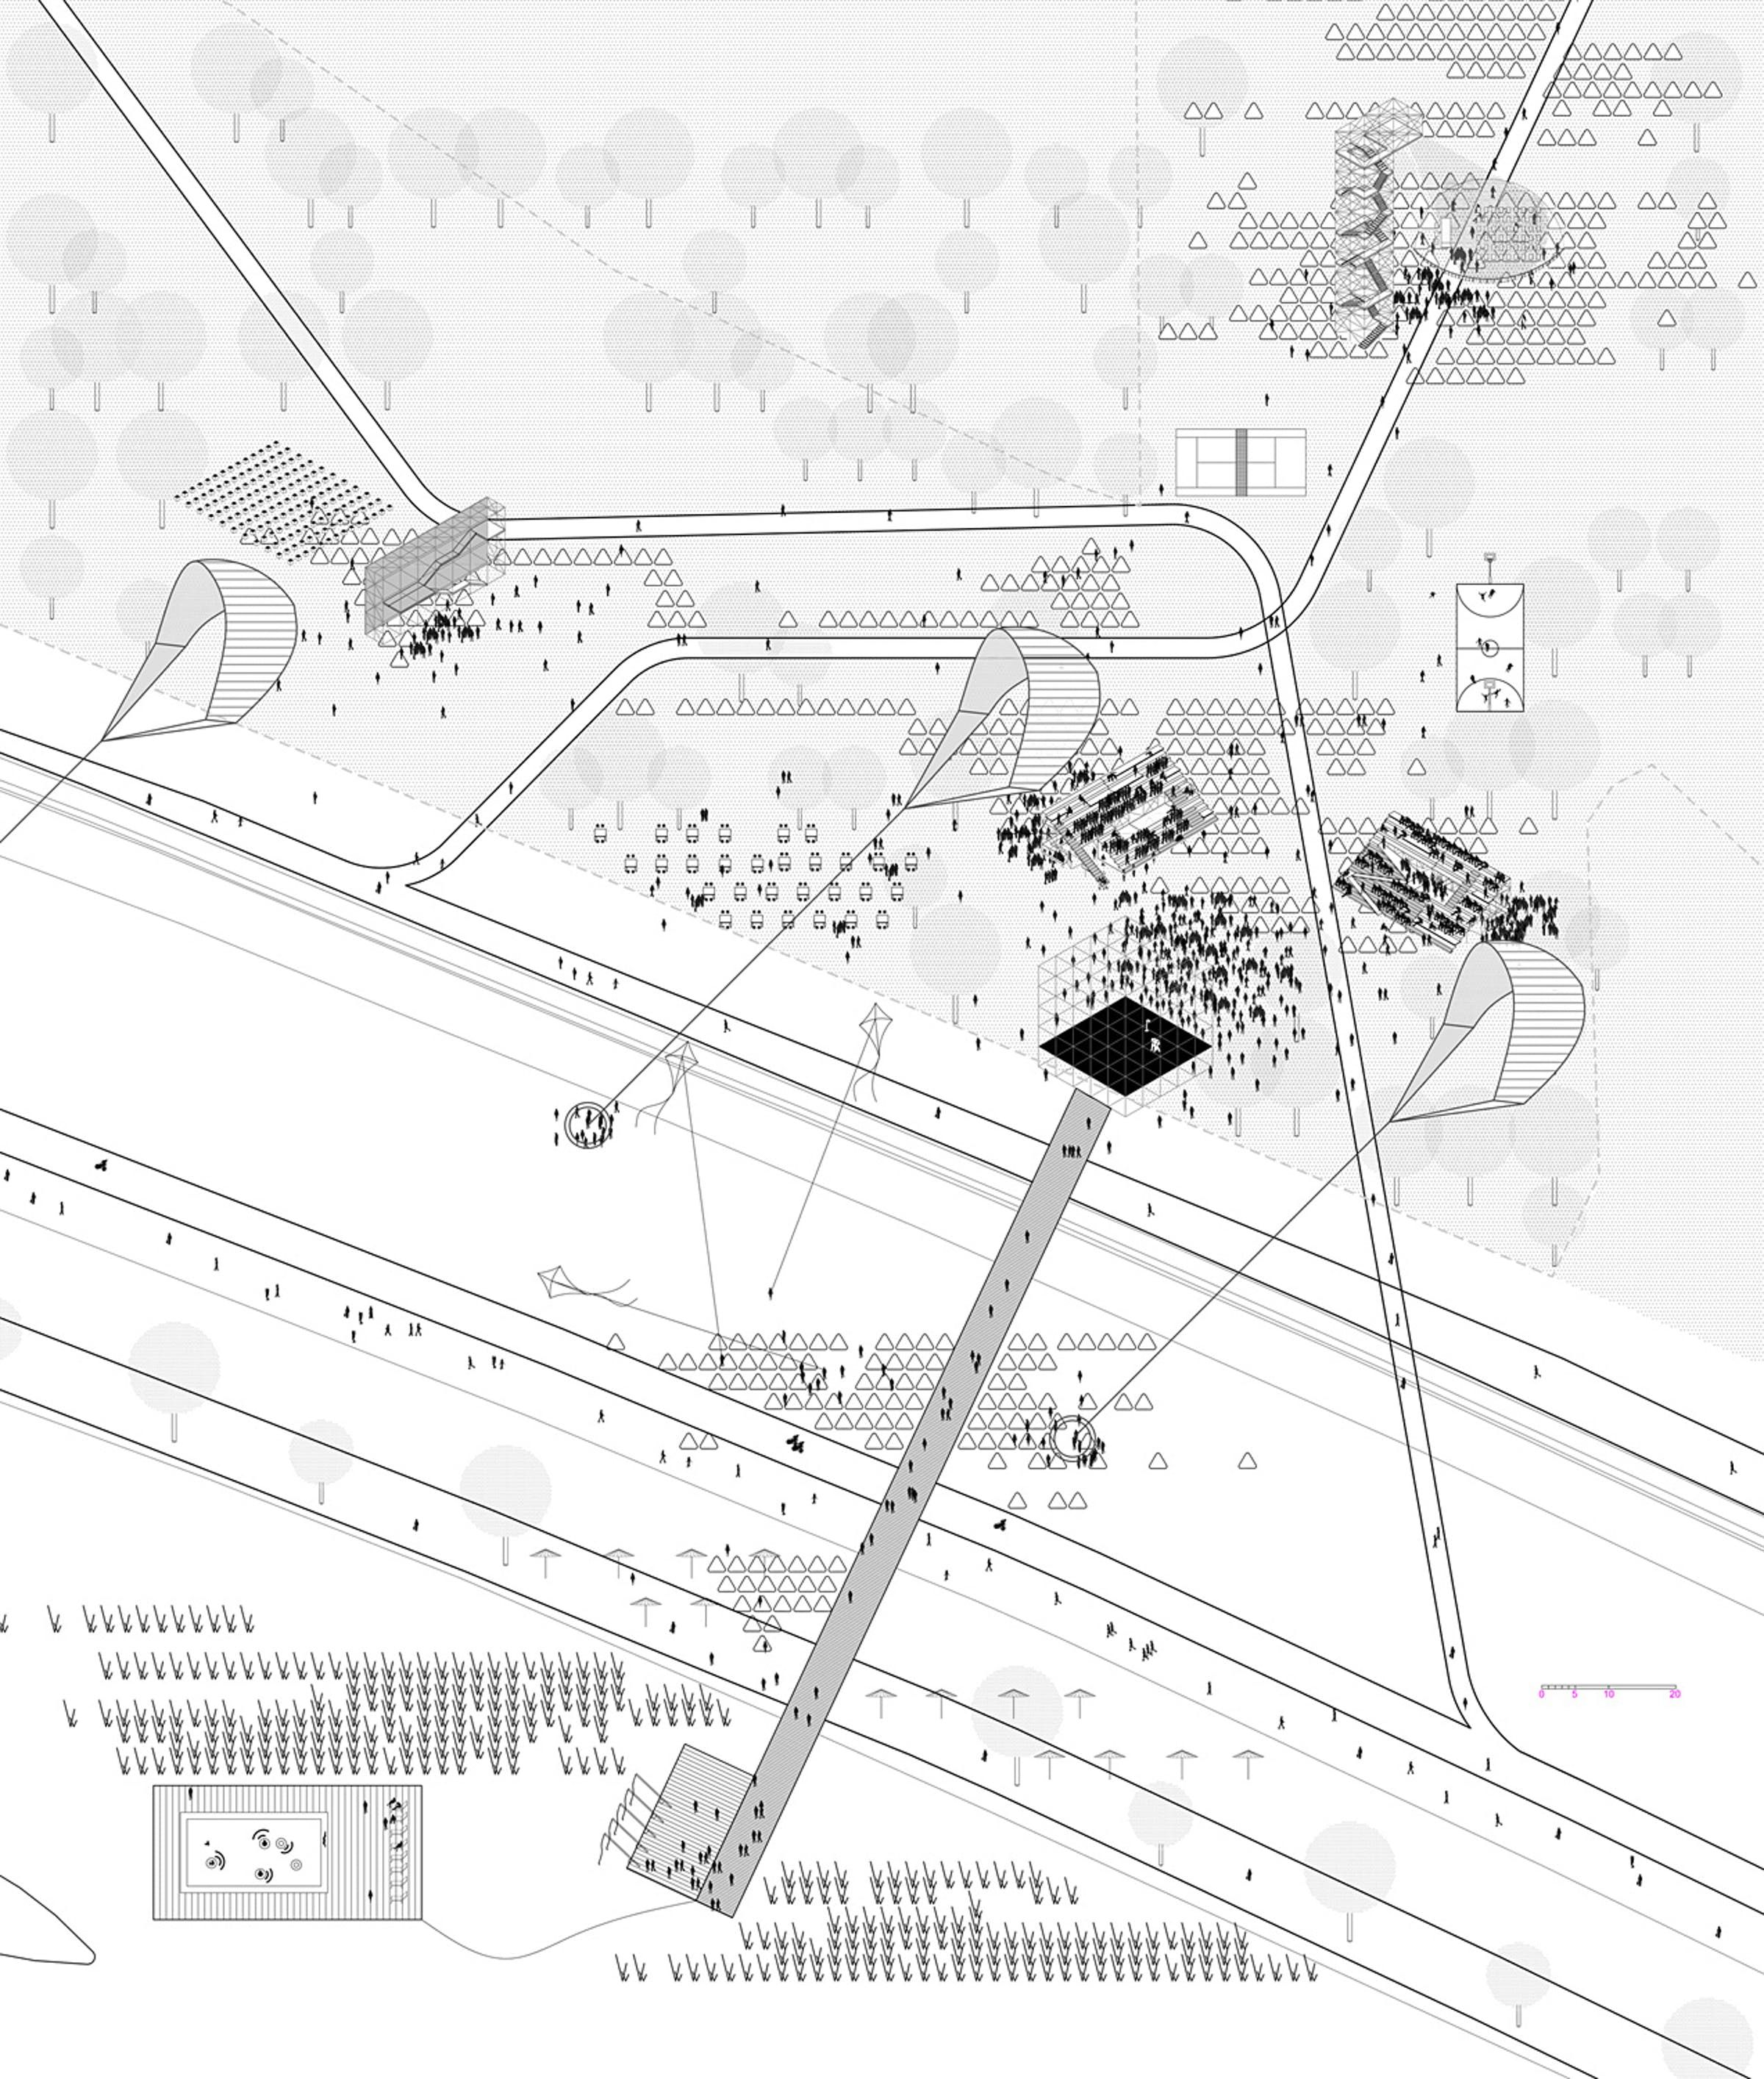 Swap On The River The 1st Prize Winner For Europan 13 Zagreb Croatia Zagreb Axonometric Drawing Architecture Drawings